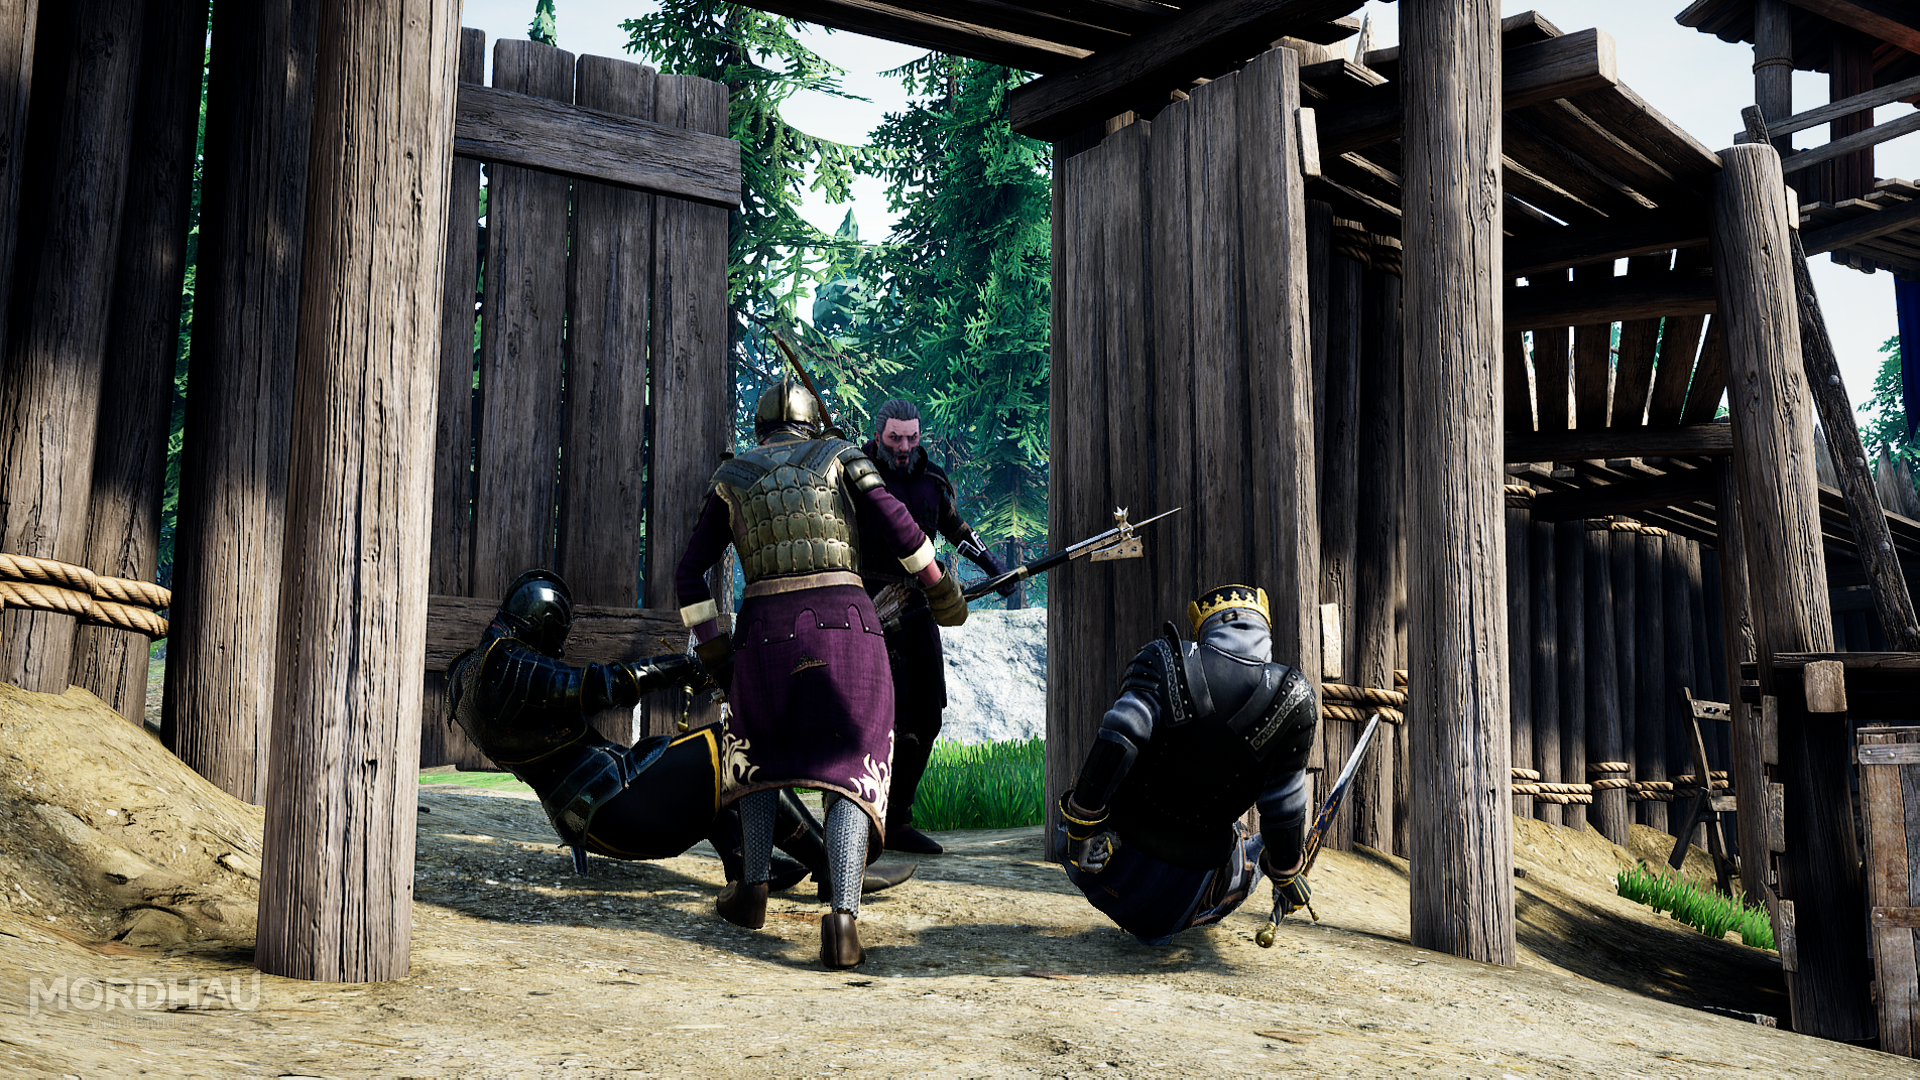 Mordhau-Win64-Shipping_2018-09-14_21-00-51.png